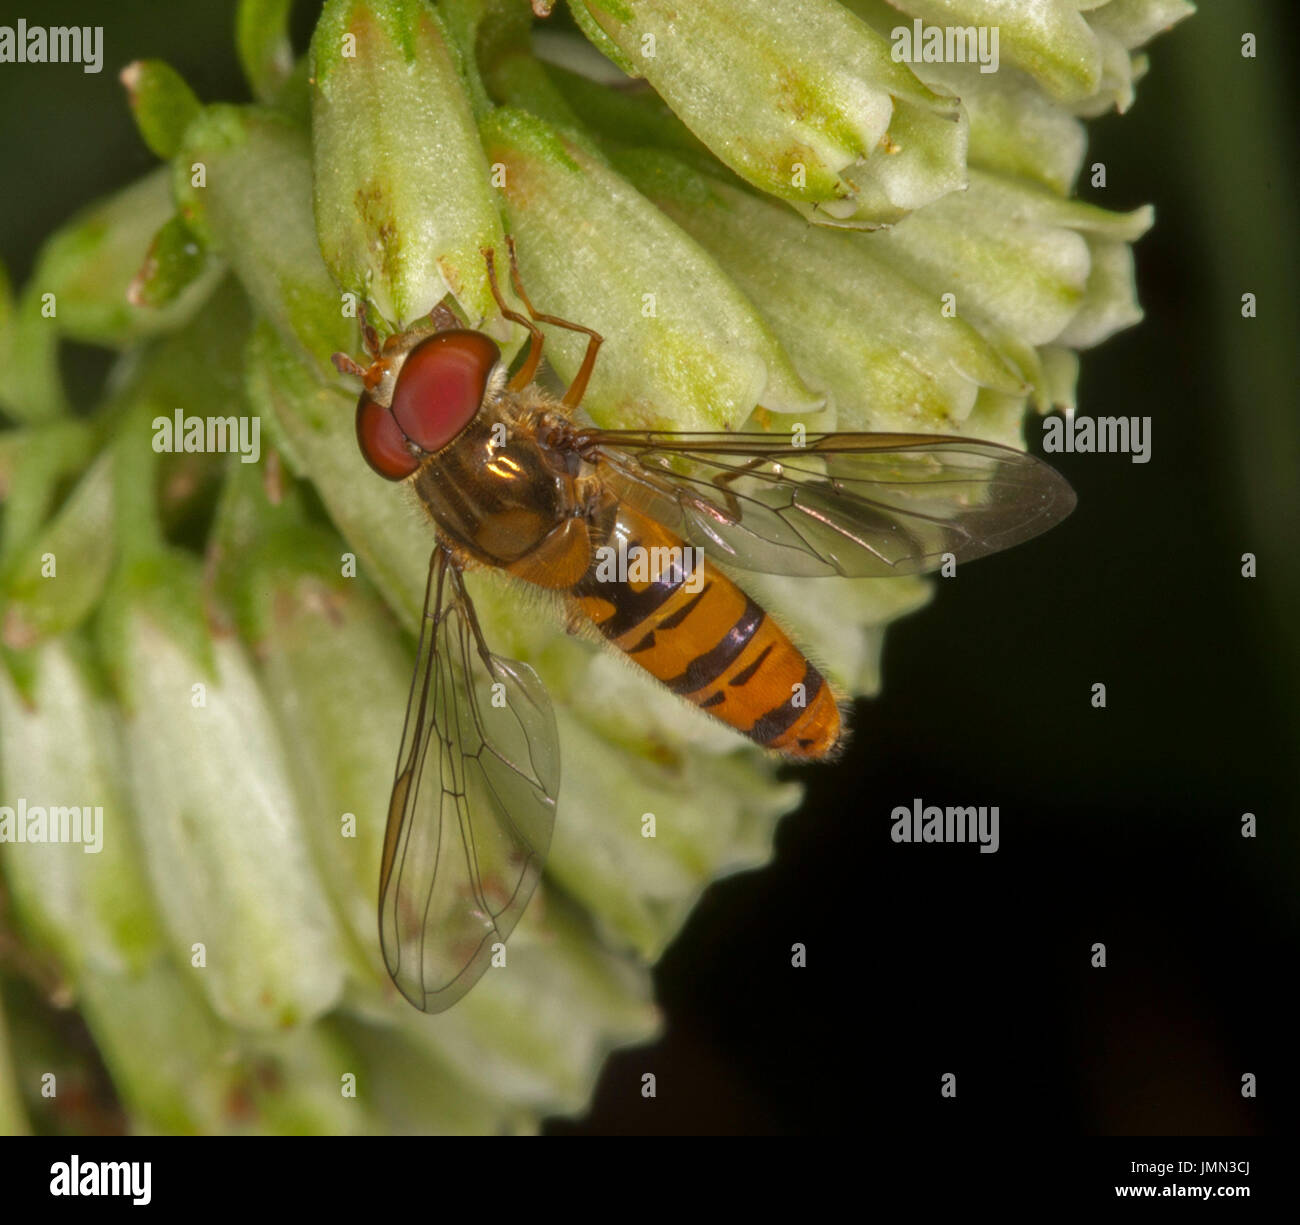 Striped hoverfly, a beneficial pollinating insect, with huge eyes clearly visible, on flower in English garden - Stock Image